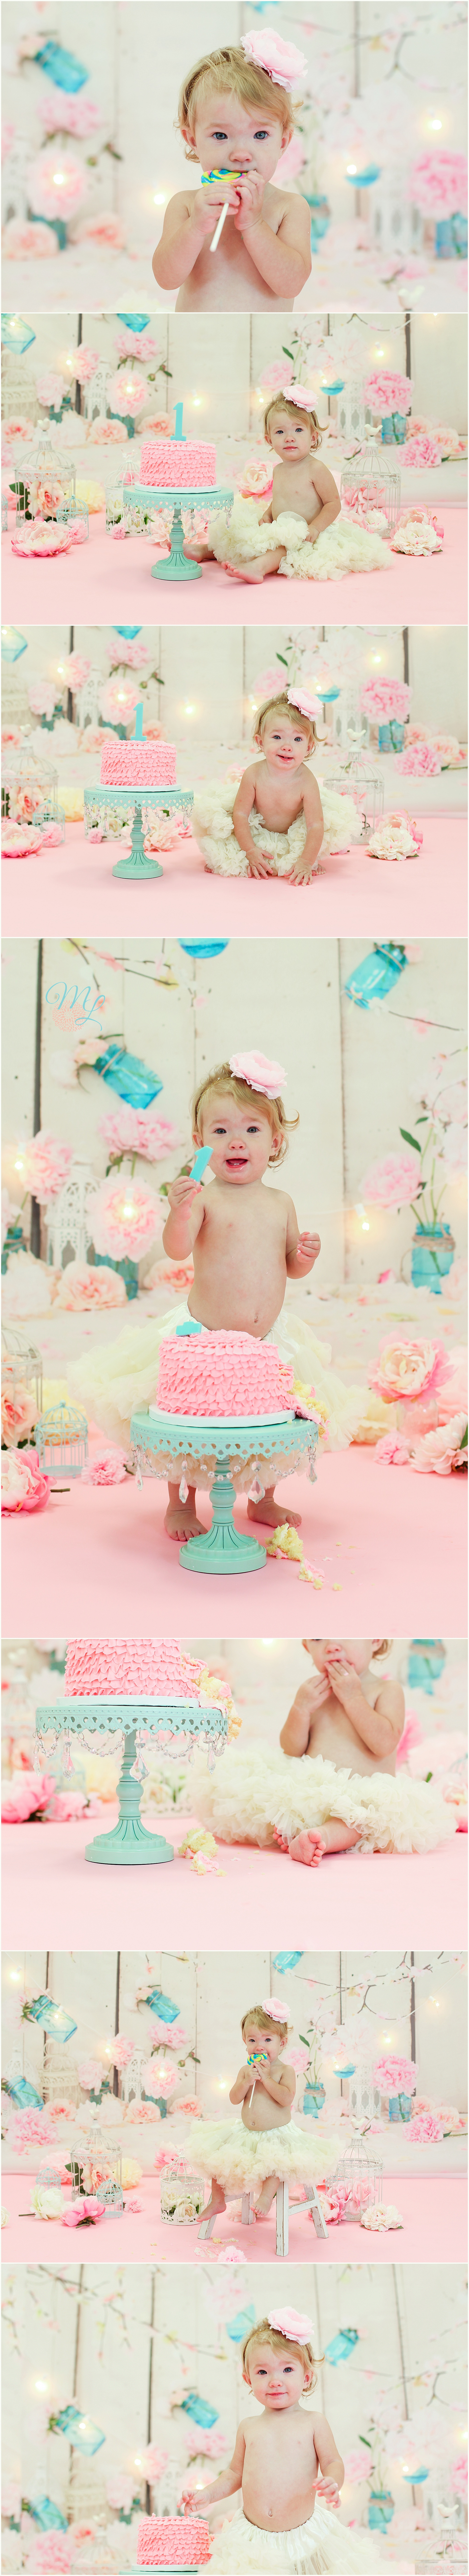 Baby girl cake smash wilmington nc